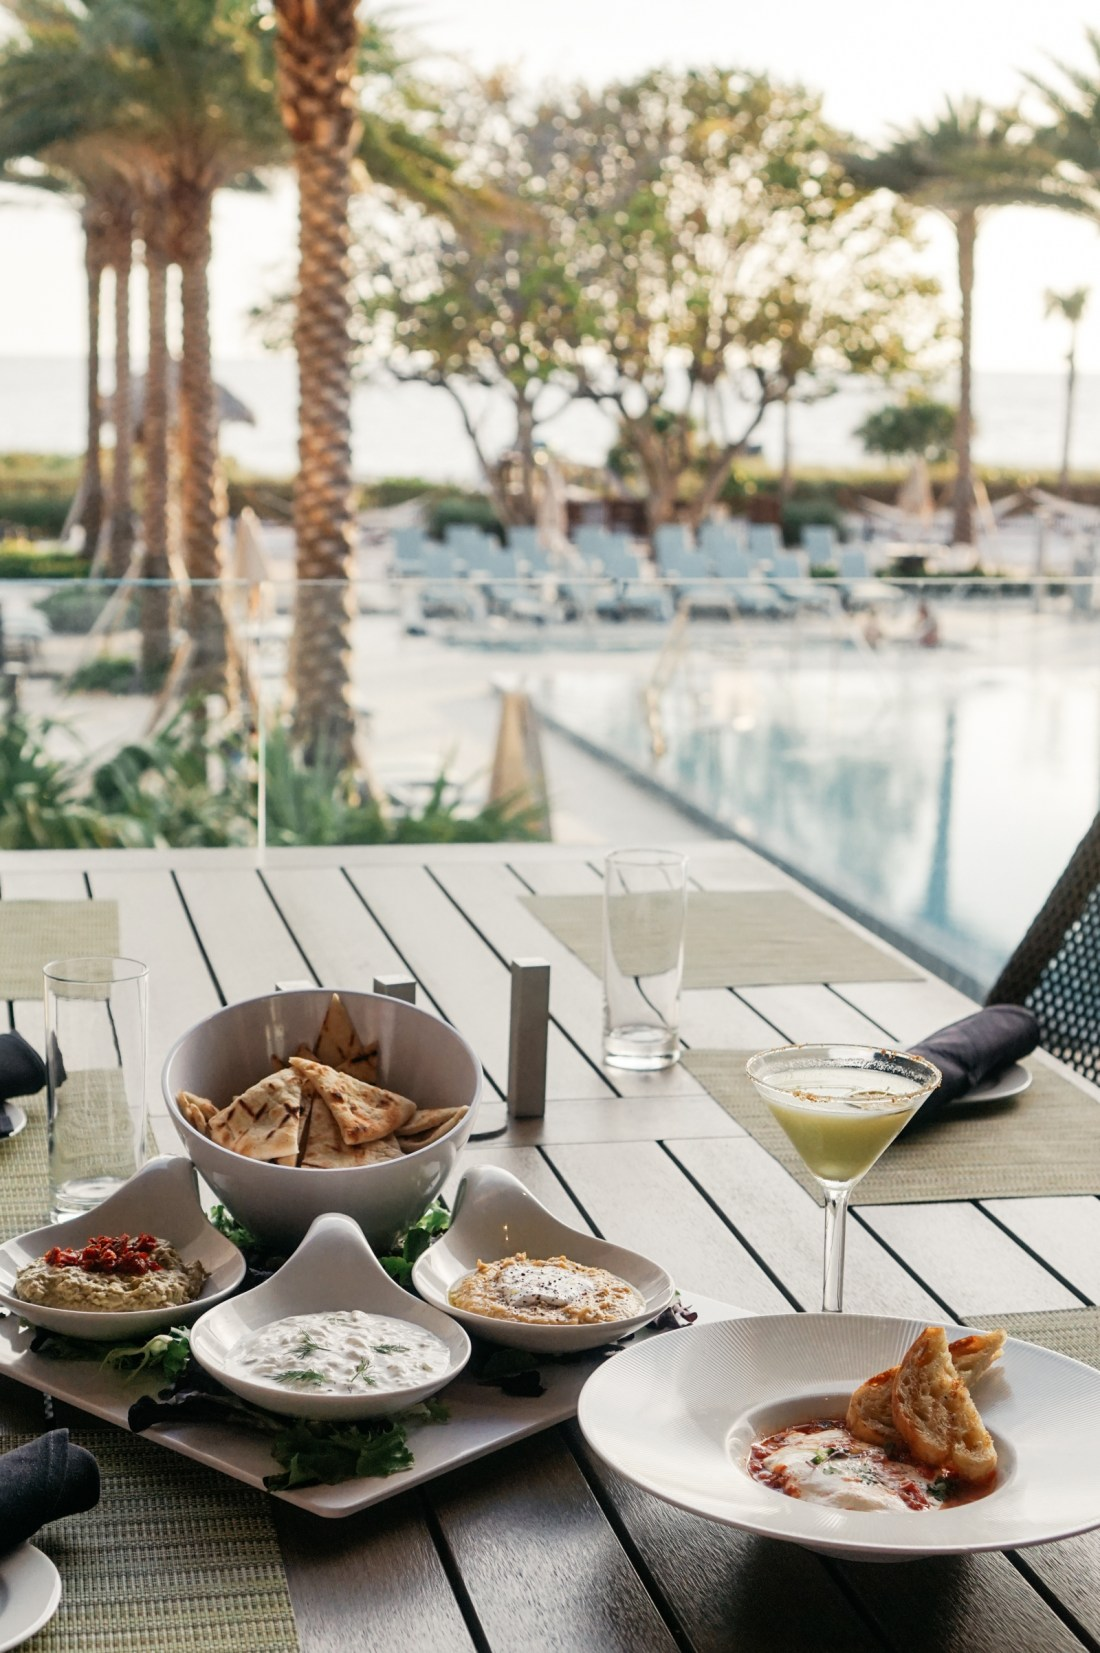 poolside meal on vacation